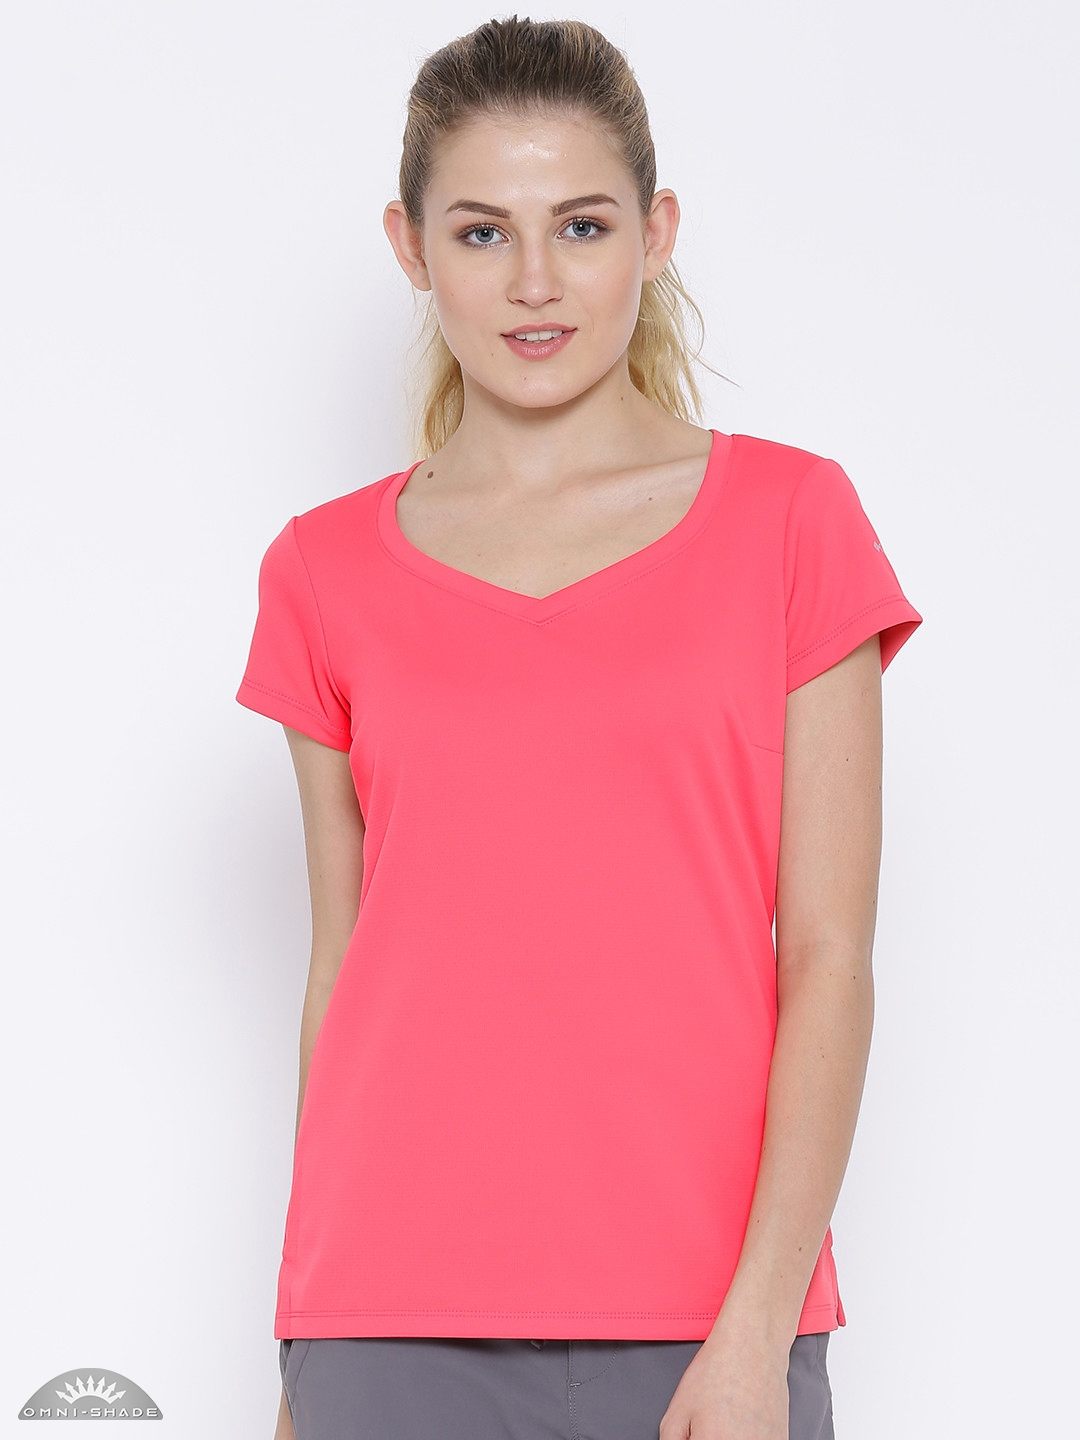 6435b23f4f8 Buy Columbia Pink Polyester Innisfree Outdoor T Shirt - Tshirts for ...